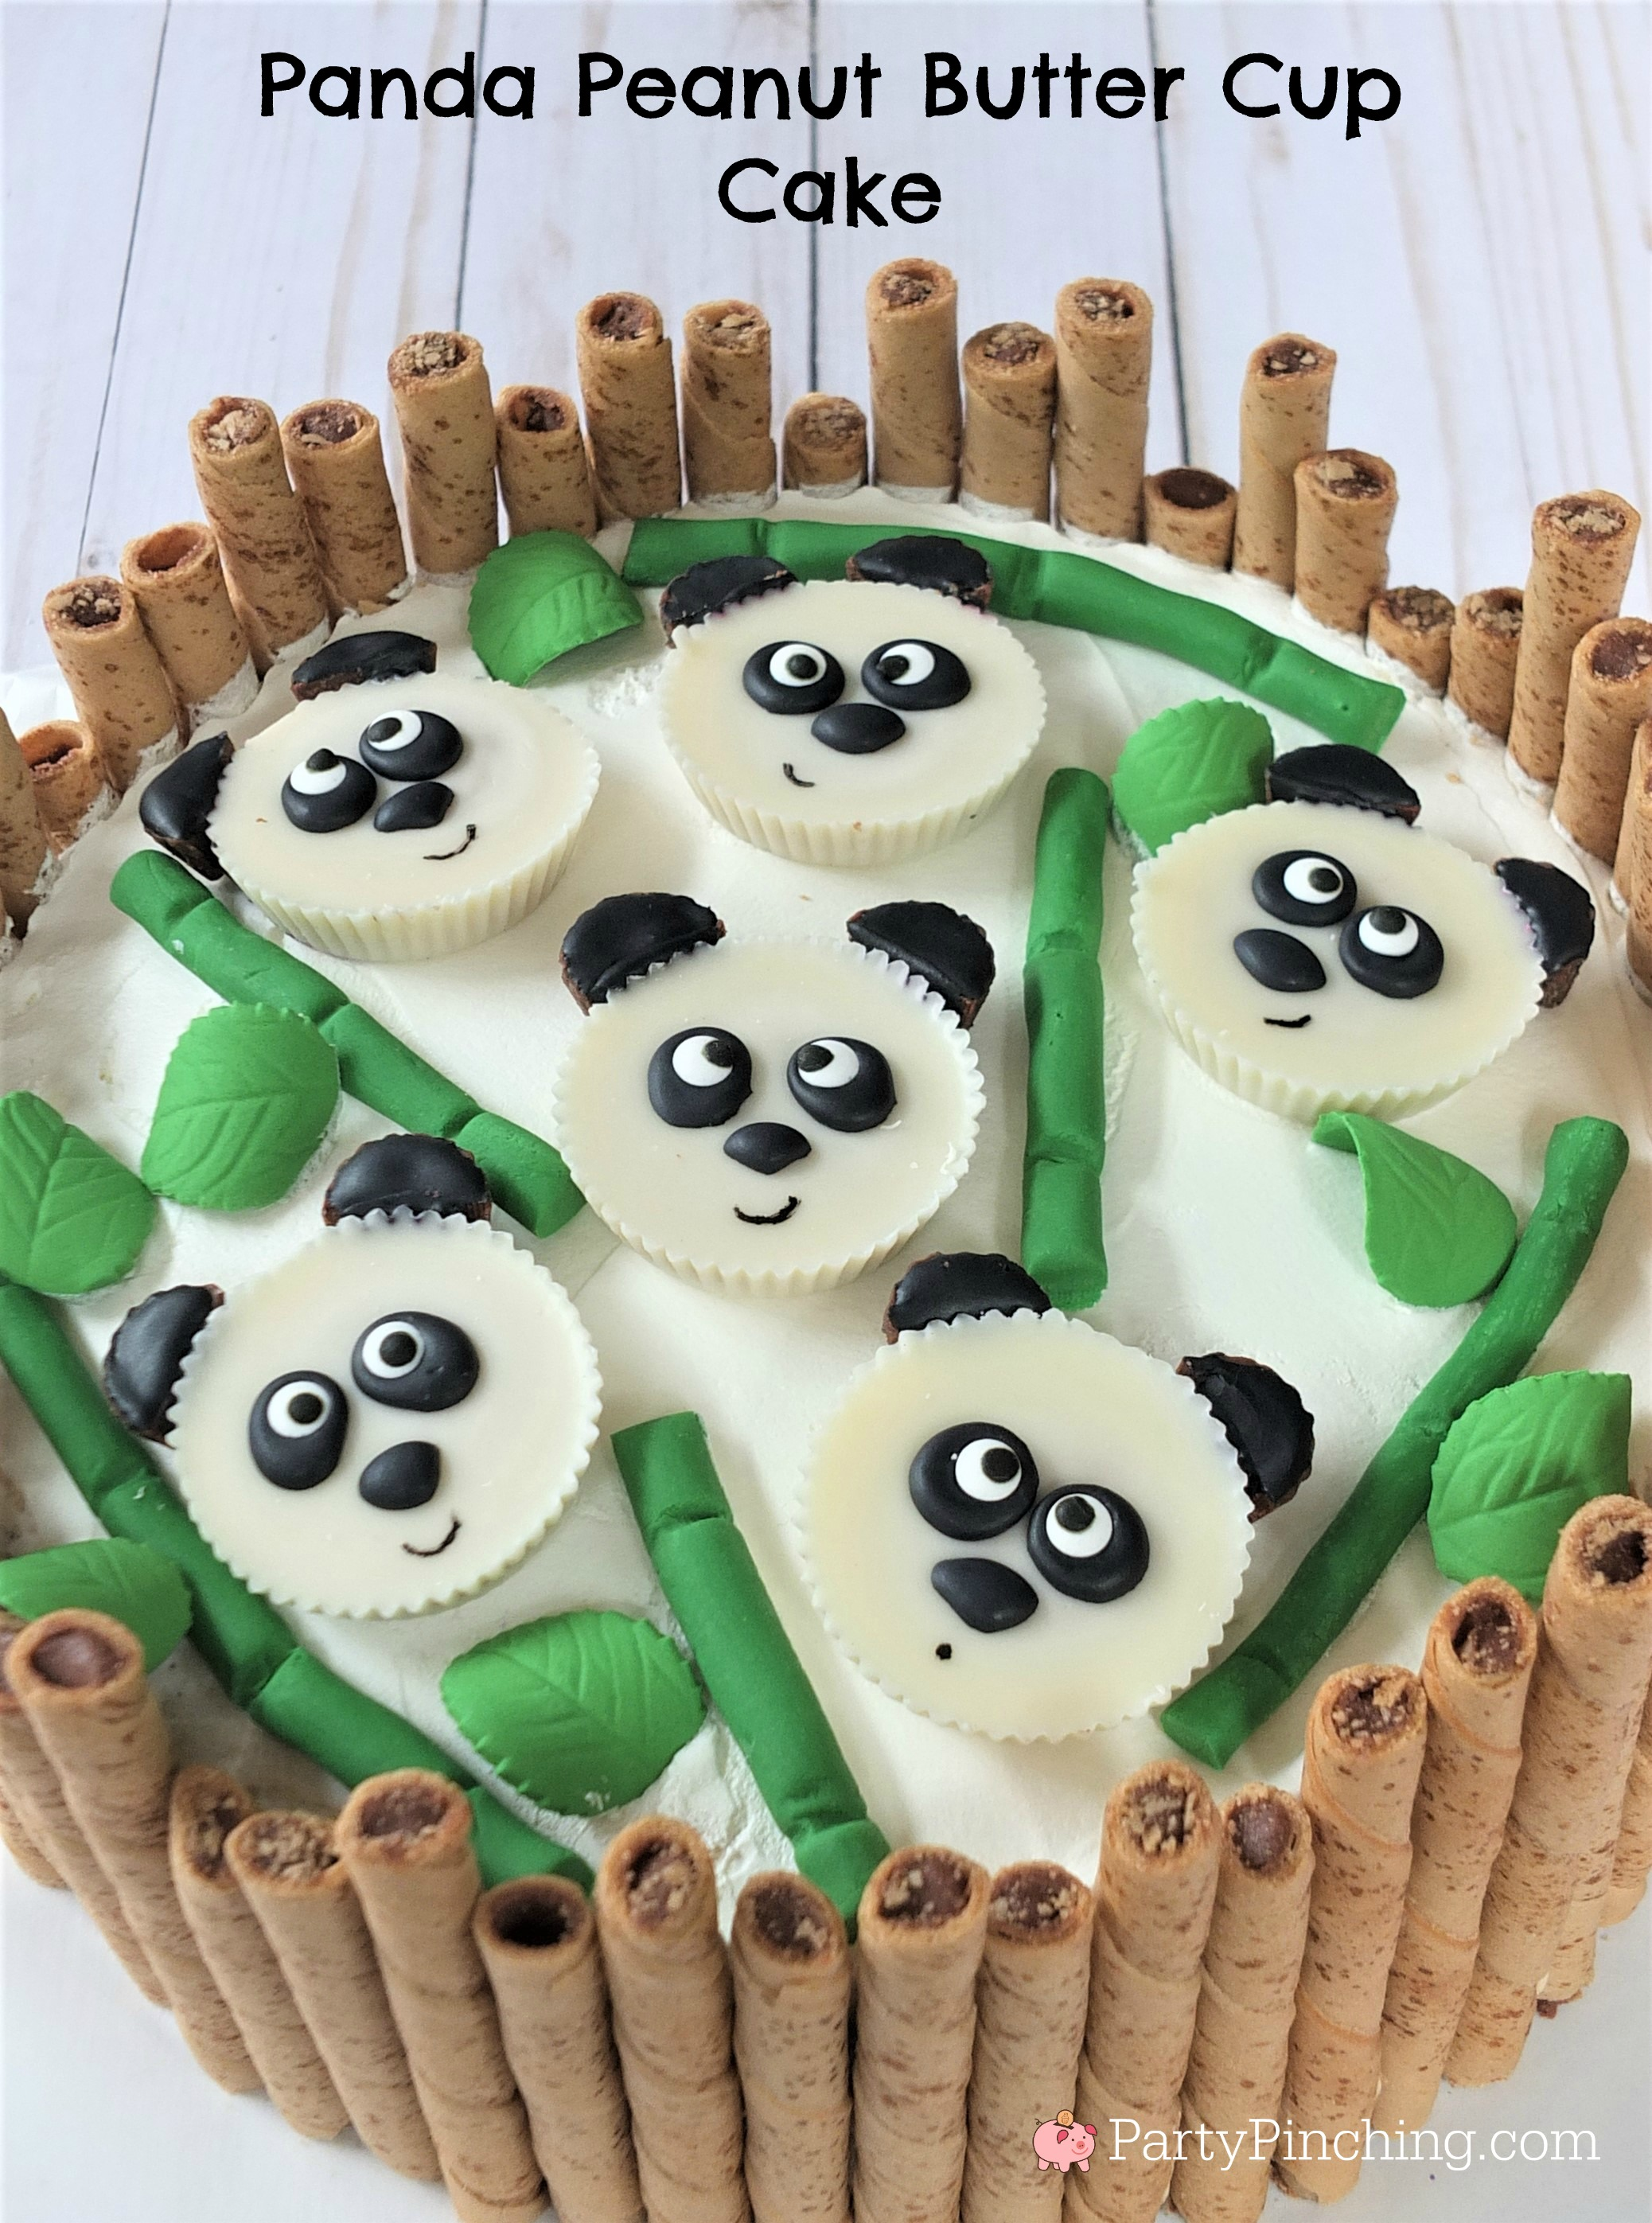 Best Panda Peanut Butter Cup Cake Chinese New Year Cake Cute Panda